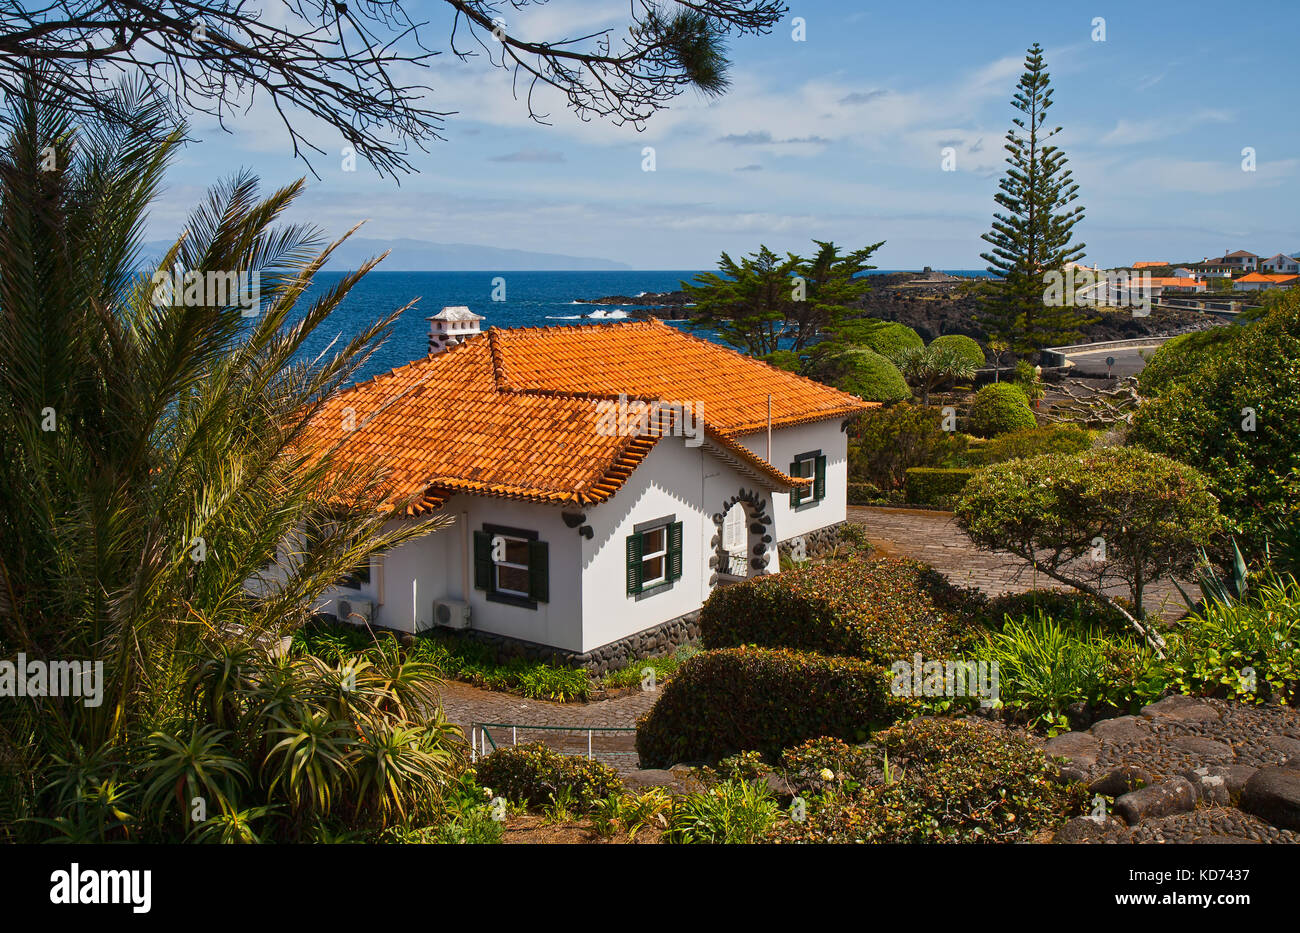 The white stone house with a tile roof on seacoast stock image